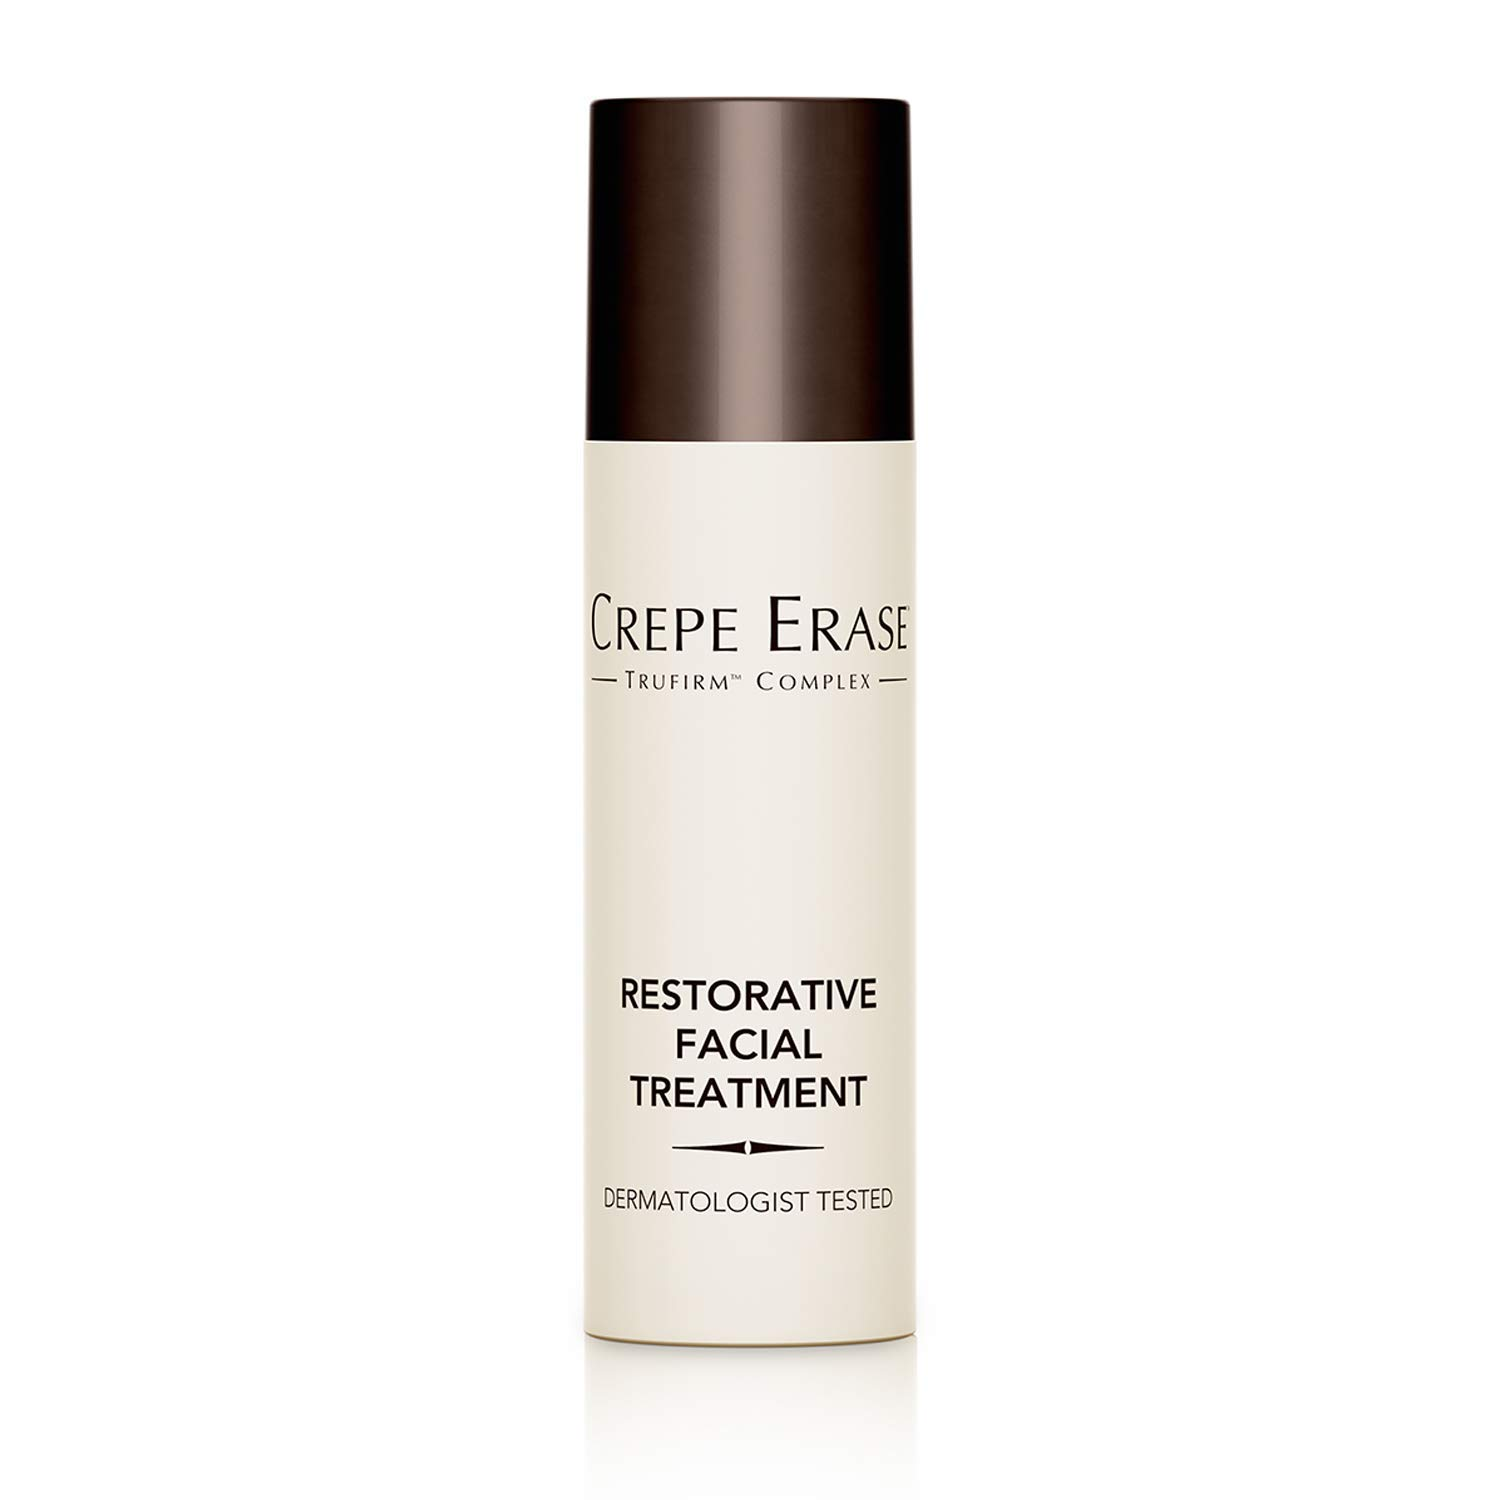 Crepe Erase - Restorative Facial Treatment - TruFirm Complex - 0.5 Ounces by Crepe Erase